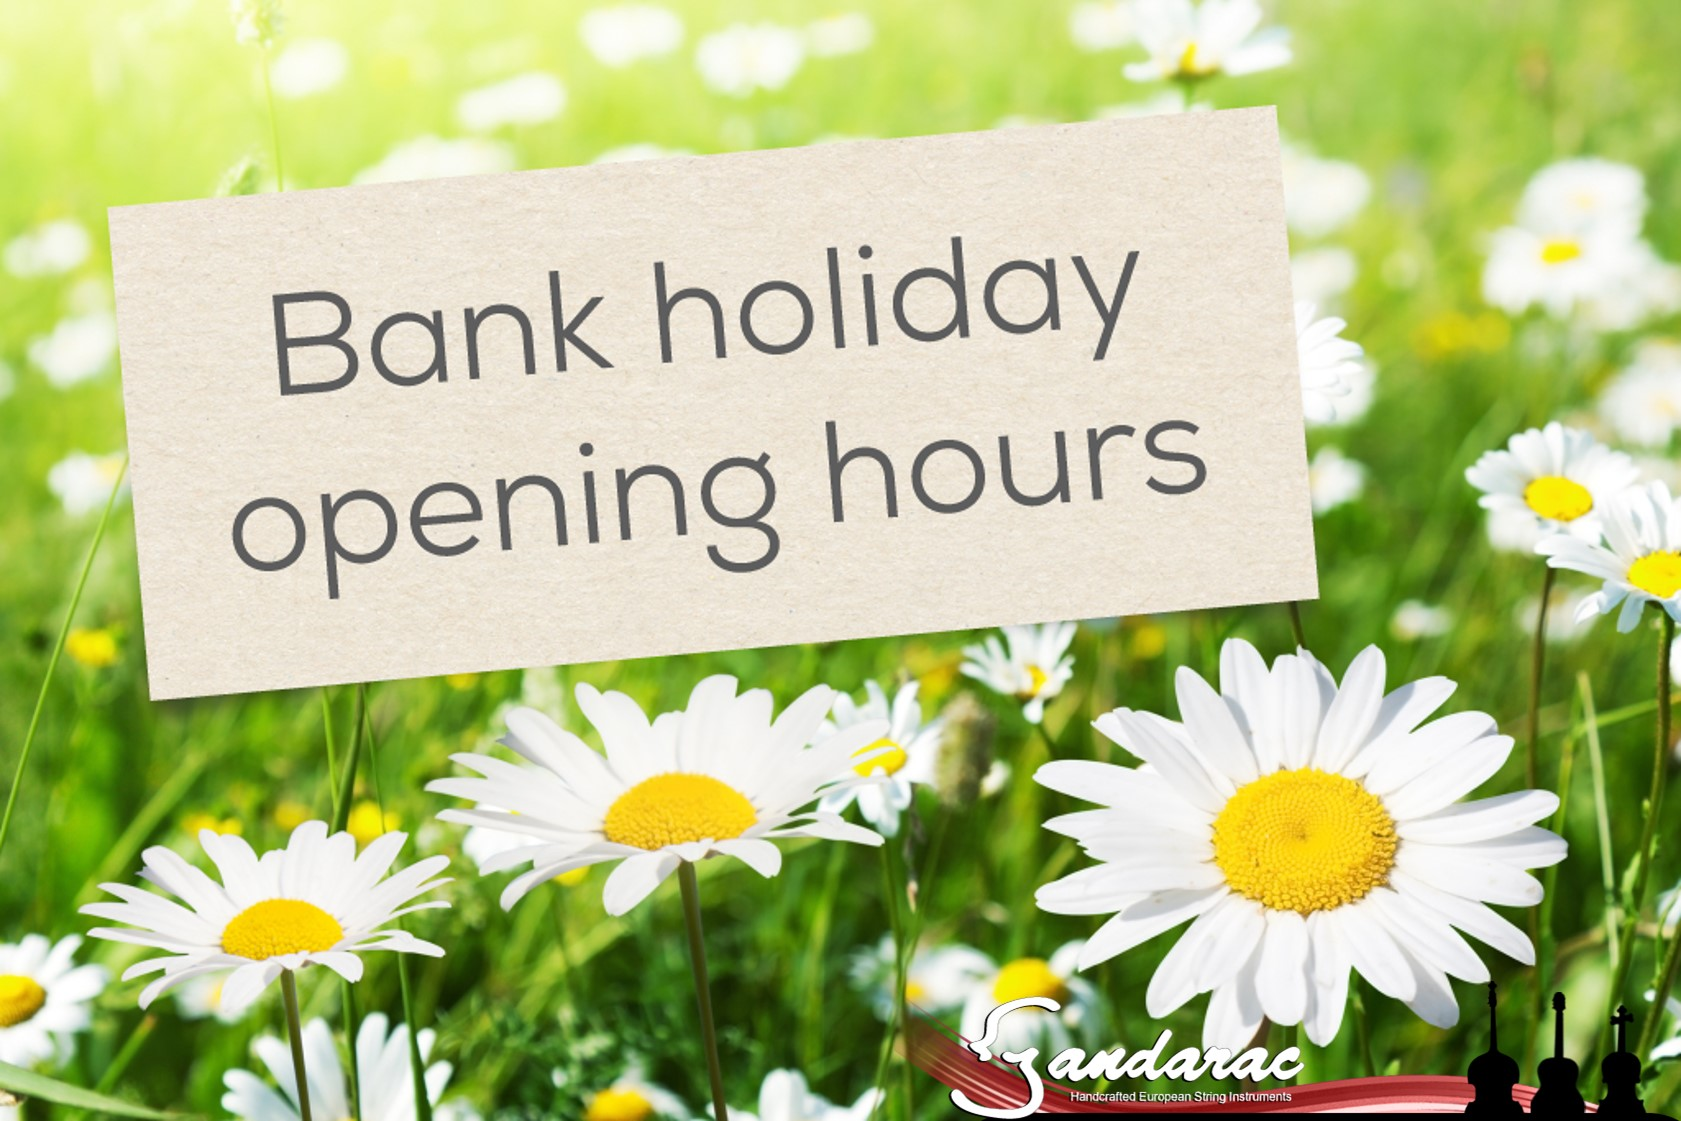 26 - bank holiday opening